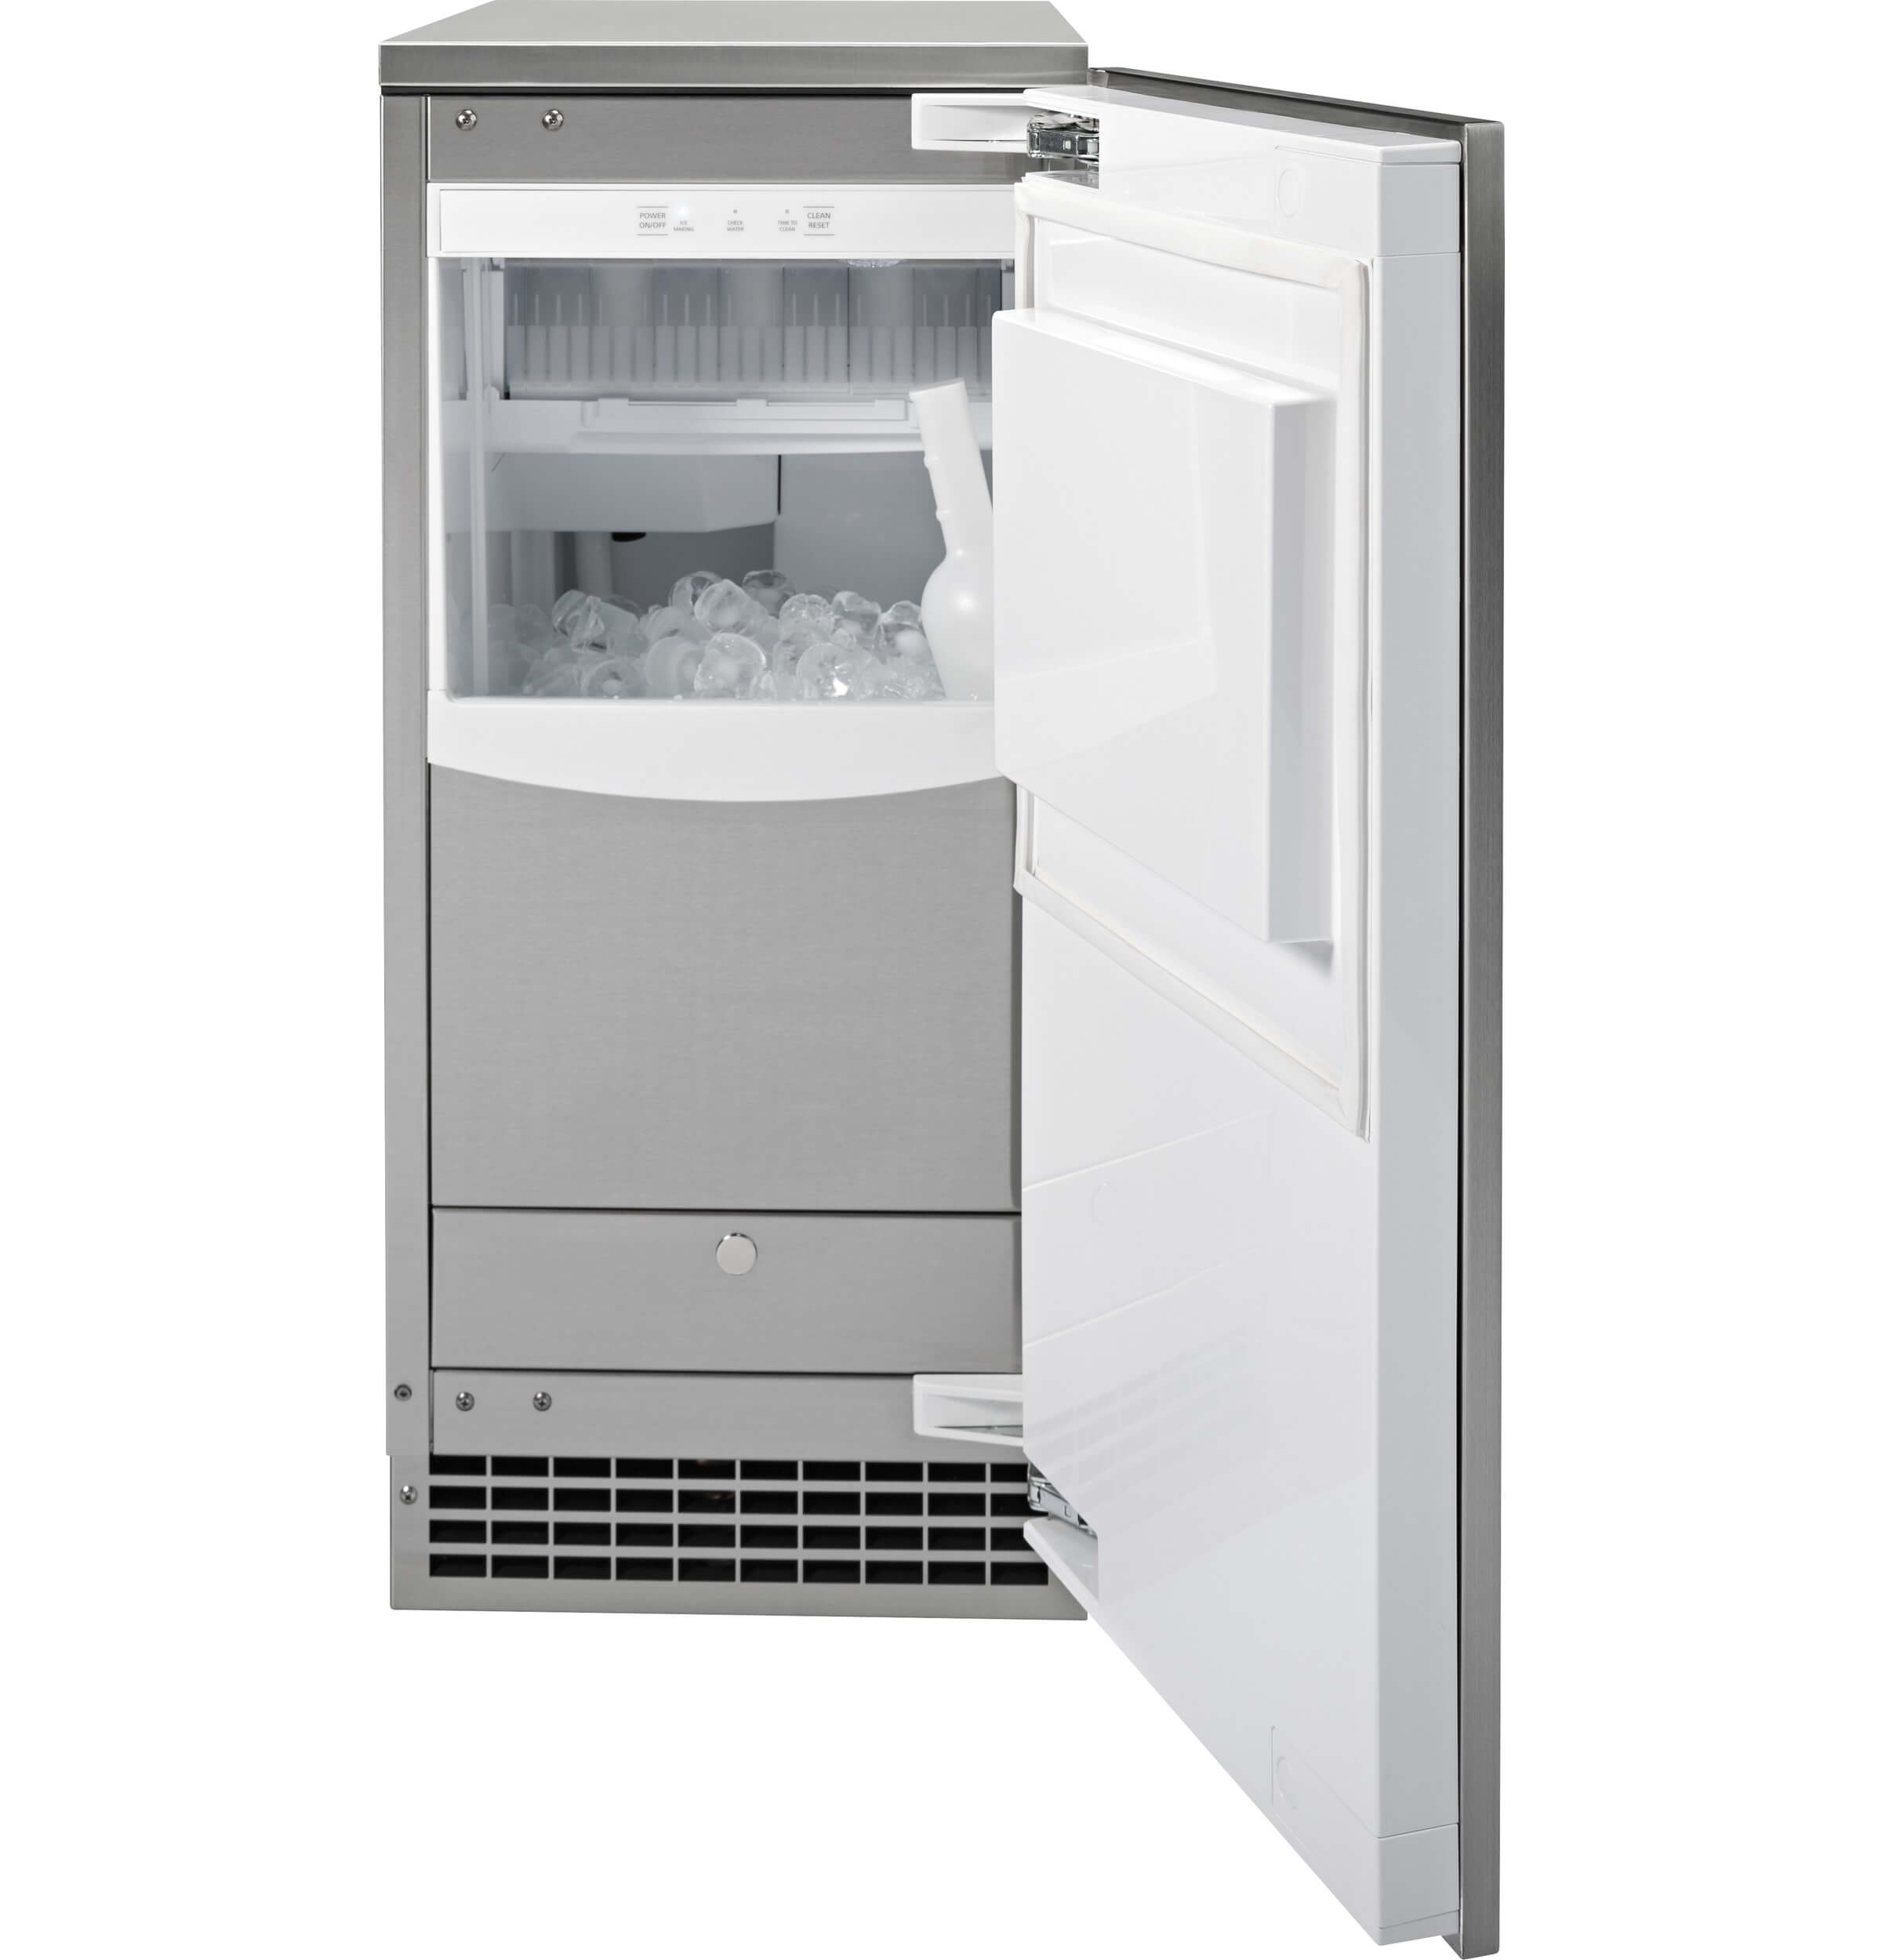 15 inch Panel Ready Built-In Ice Maker